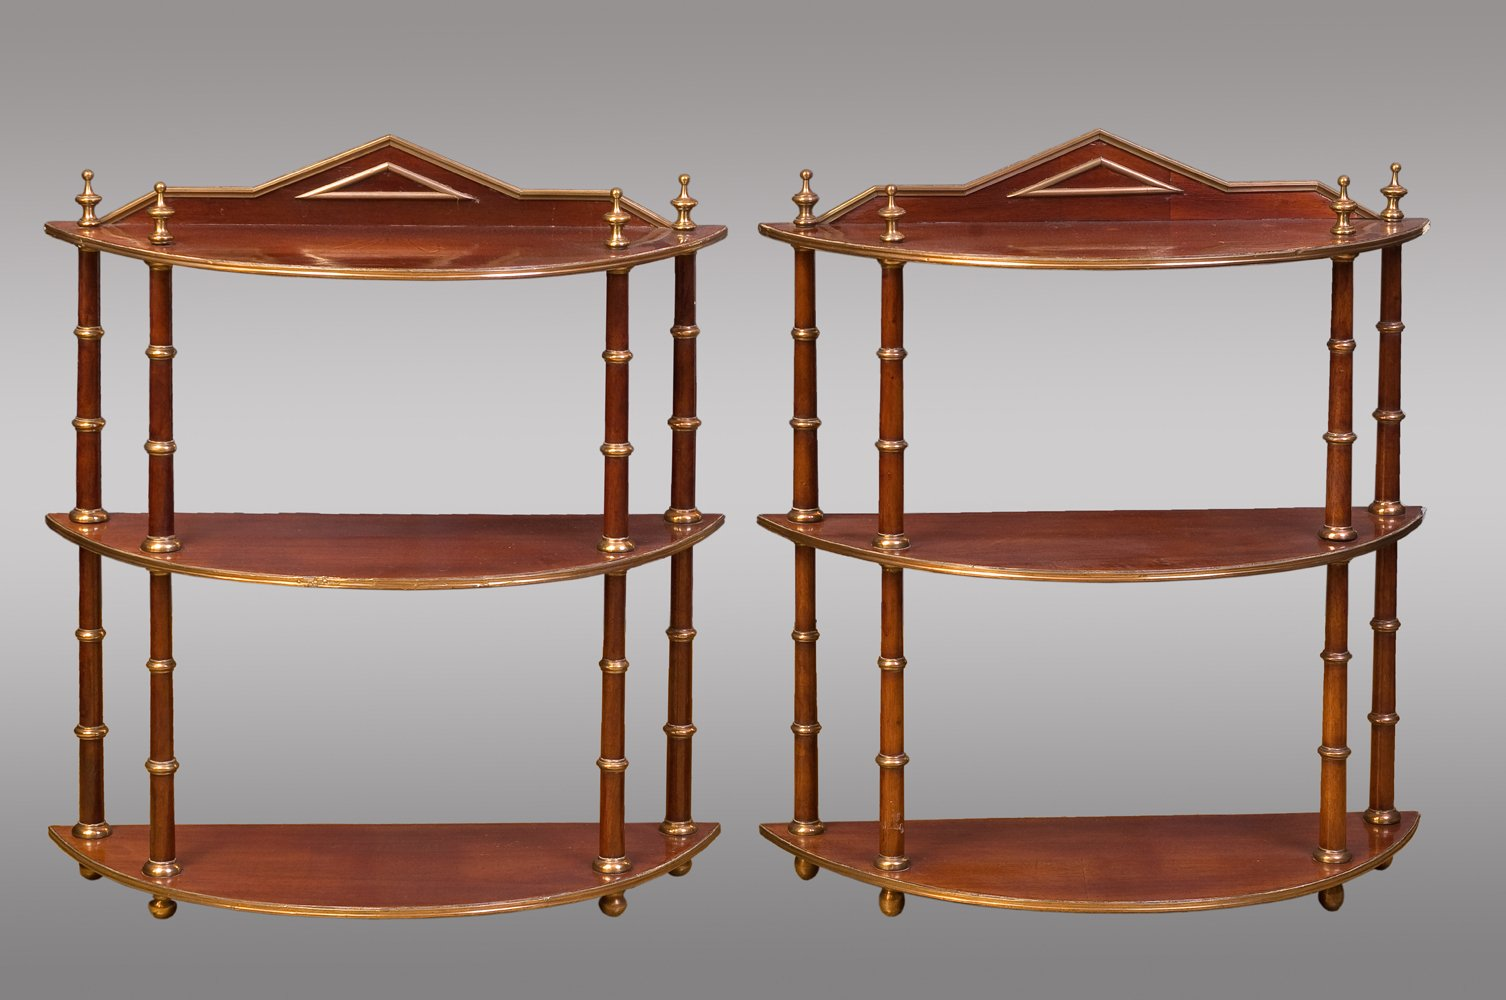 Antique Baltic Hanging Shelves Set Of 2 For Sale At Pamono